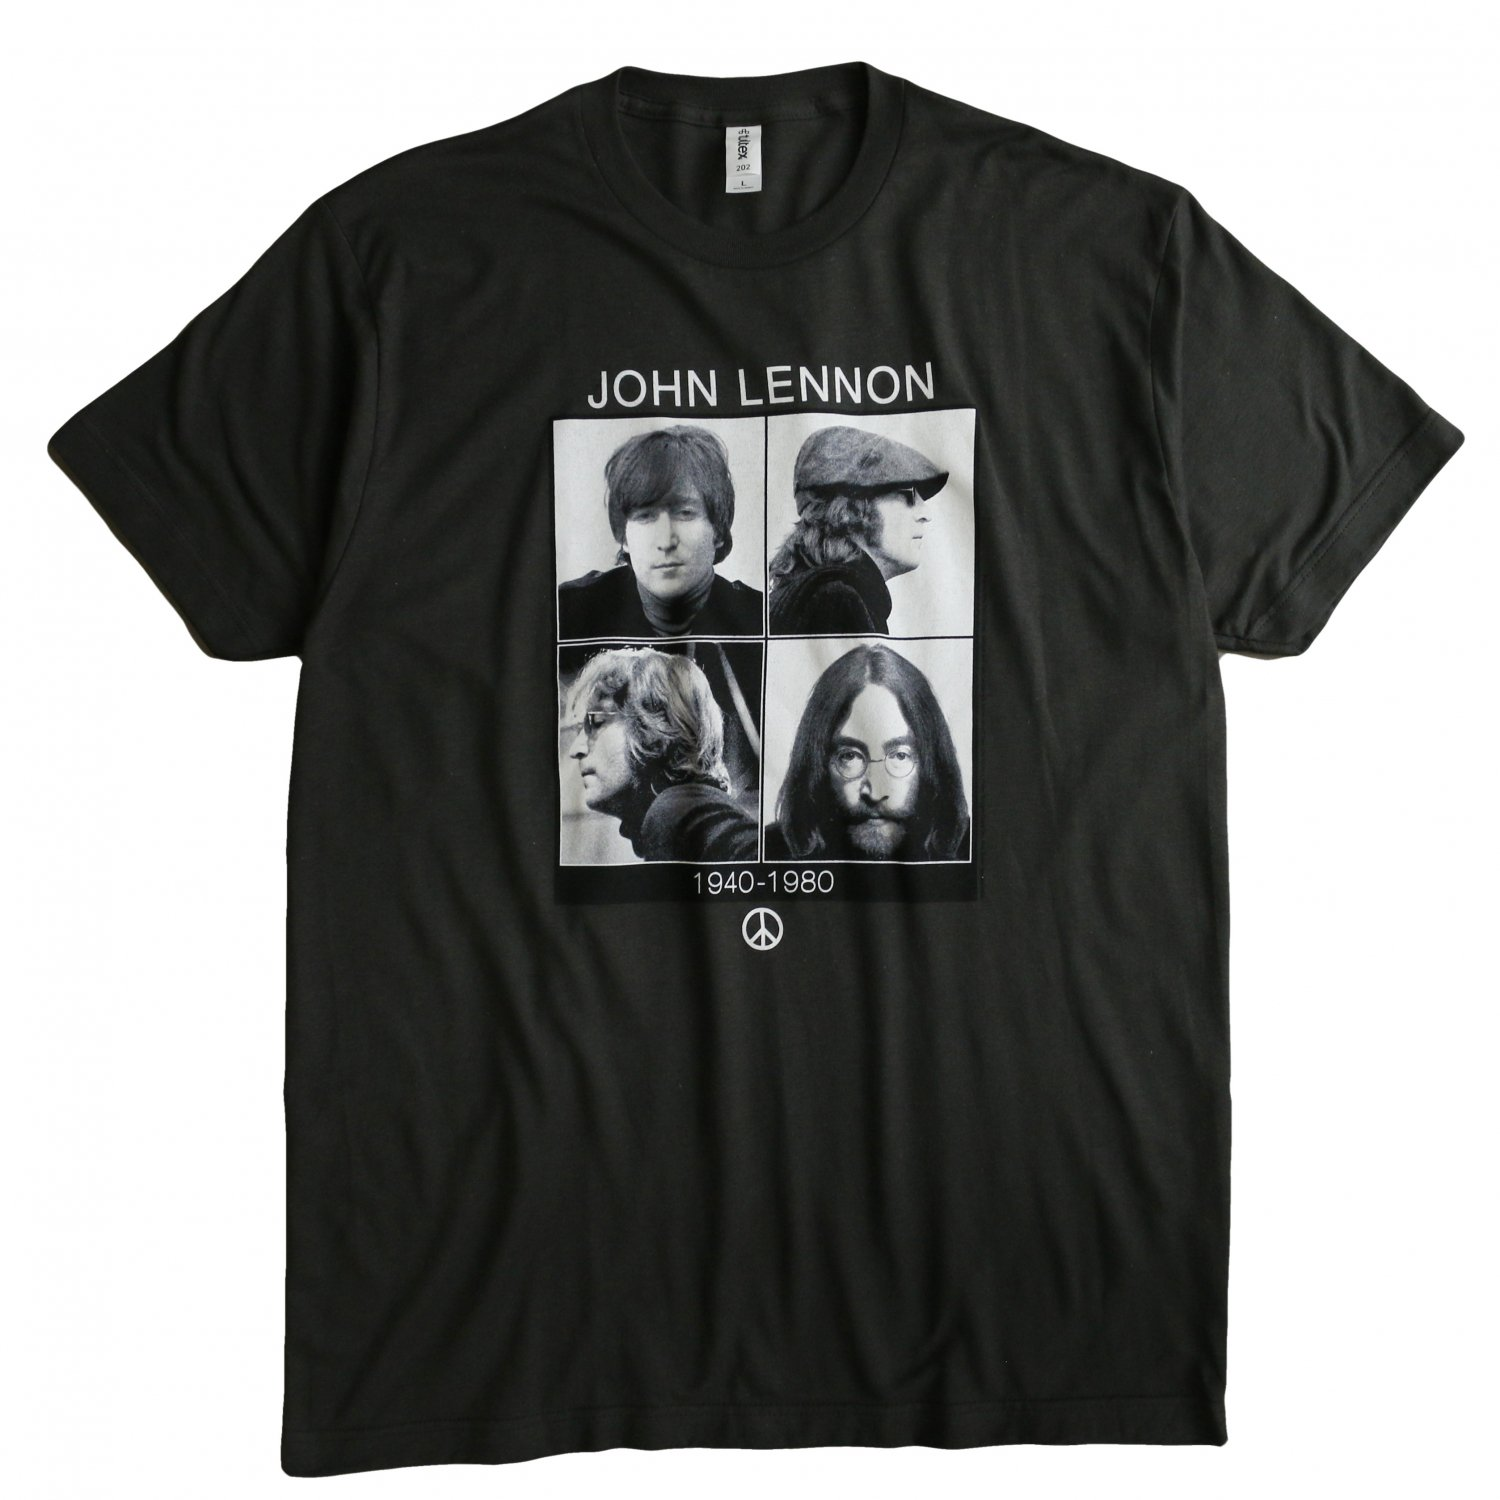 <img class='new_mark_img1' src='https://img.shop-pro.jp/img/new/icons8.gif' style='border:none;display:inline;margin:0px;padding:0px;width:auto;' />Music Tee / S/S TEE JOHN LENNON